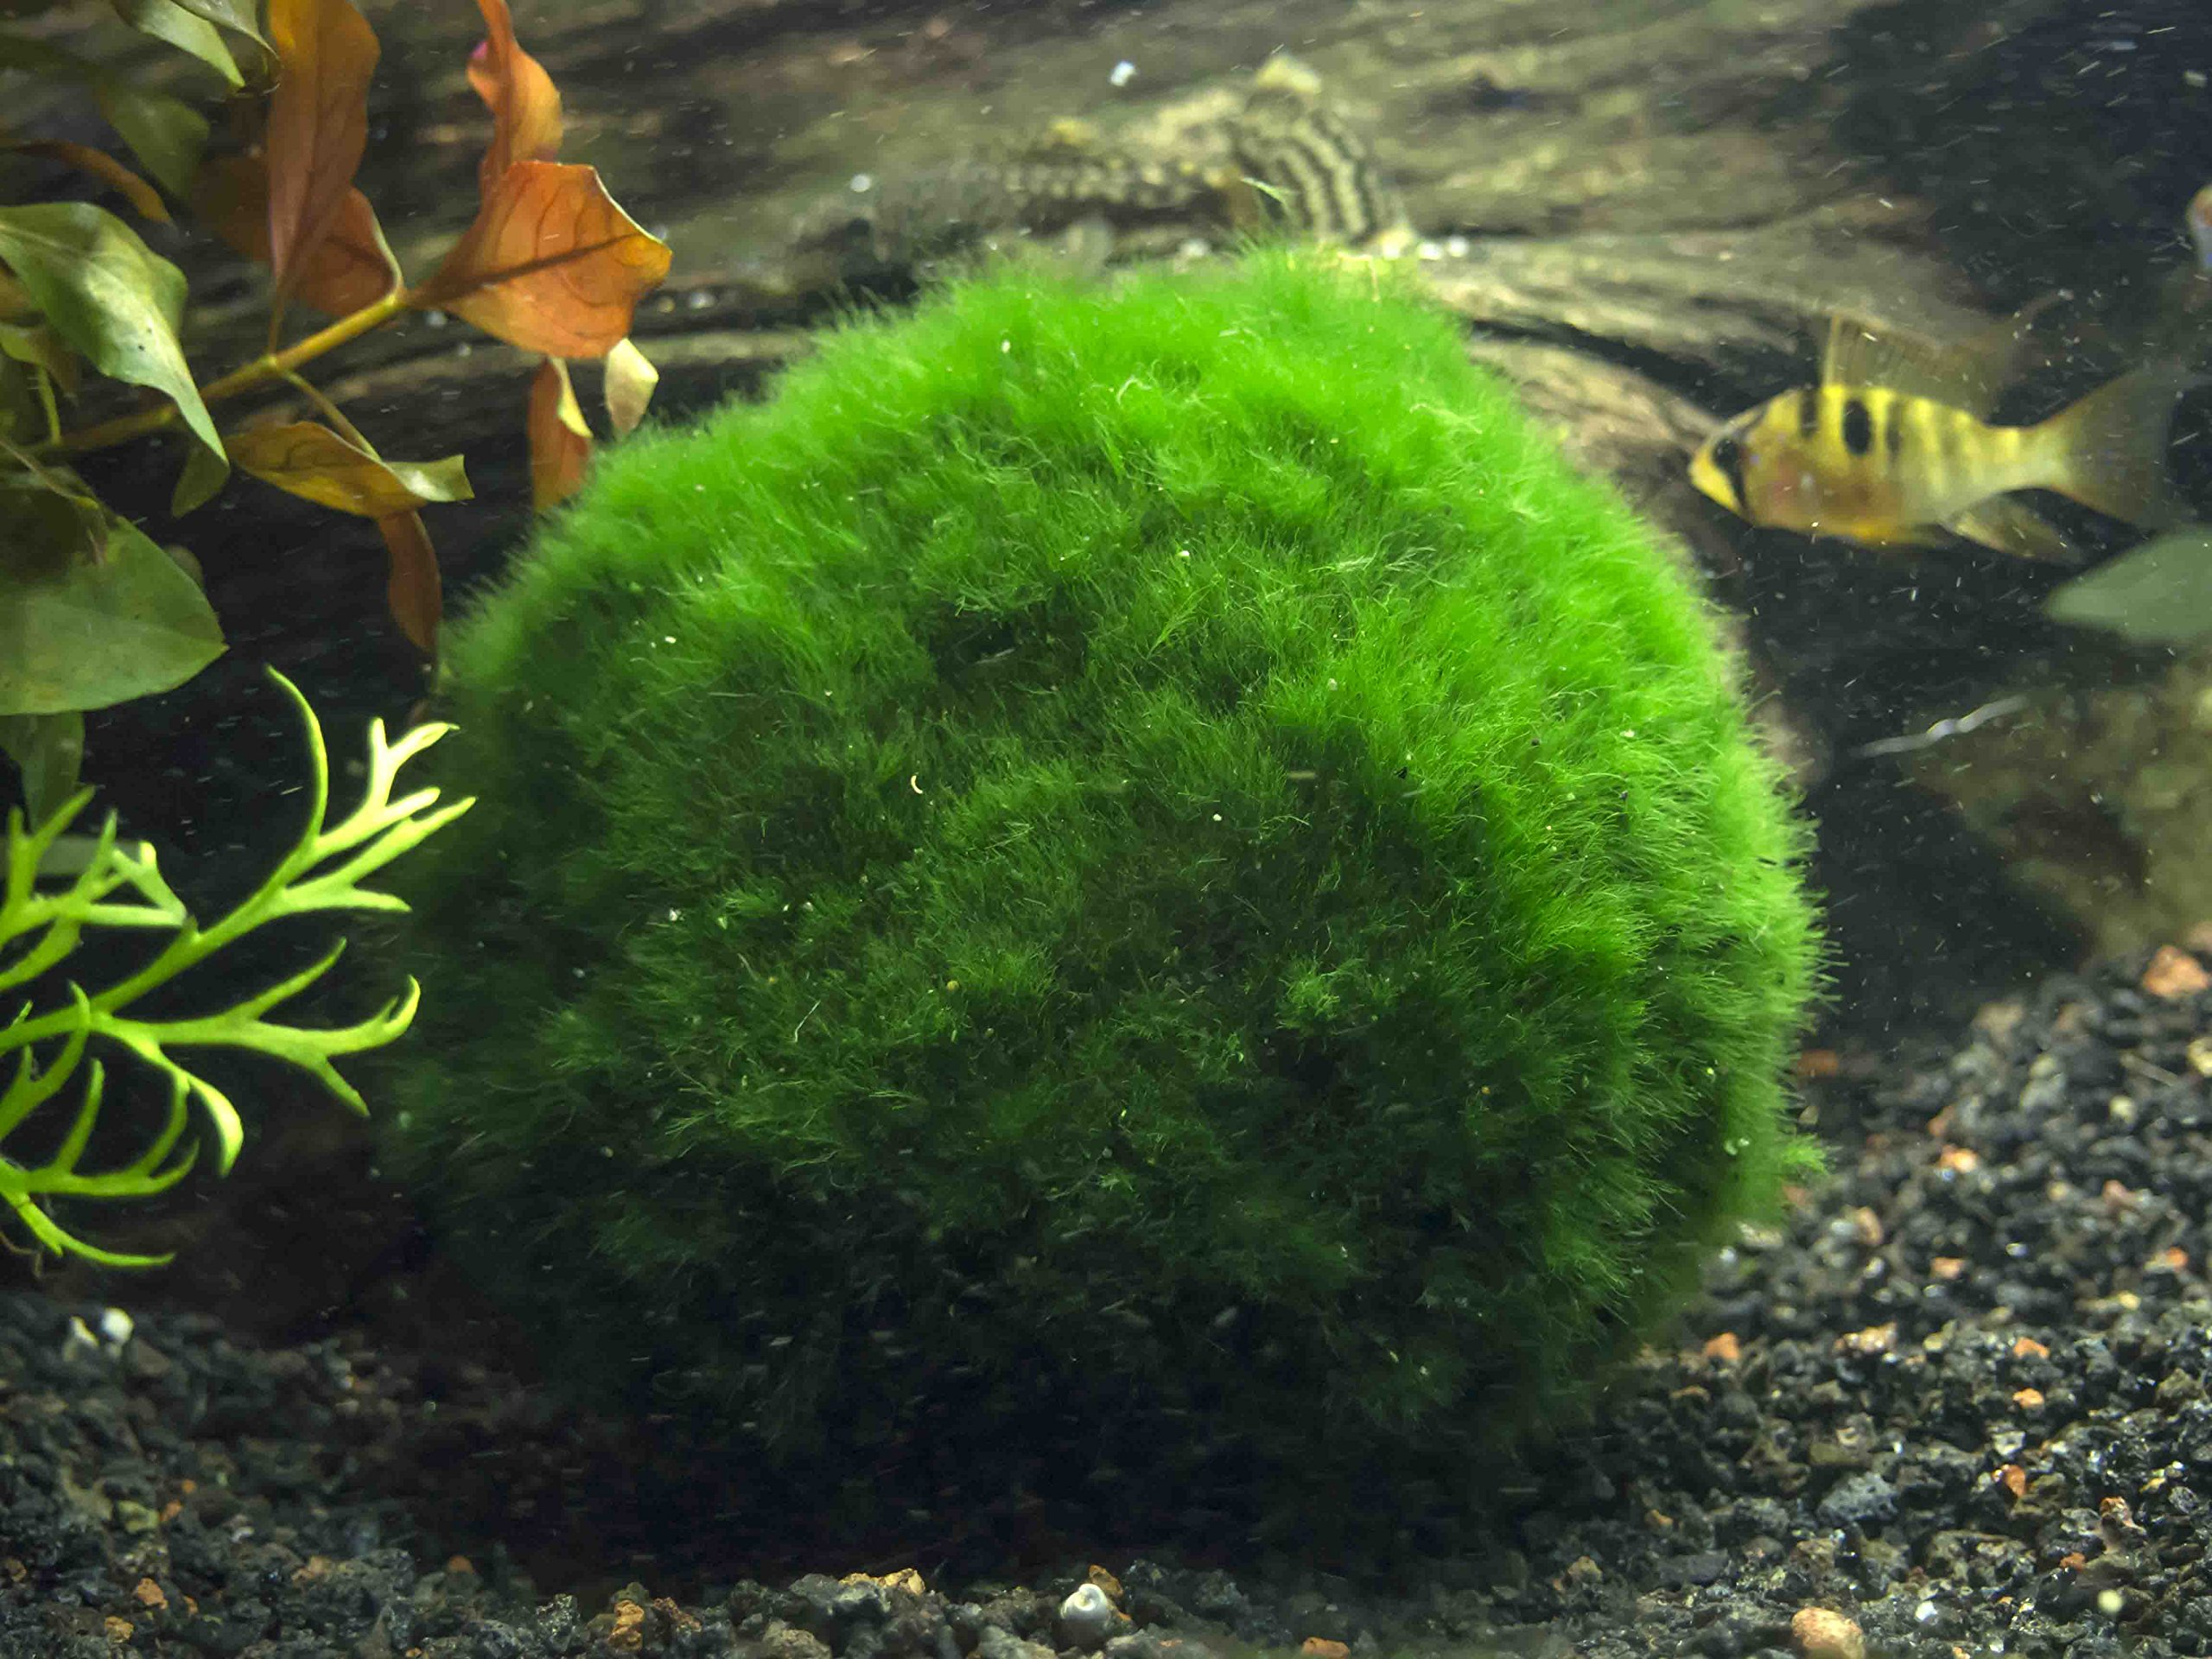 3 Giant Marimo Moss Balls XL Size + 1 Free - Very - 2 to 2.5 Inches, 8 to 15 Years Old